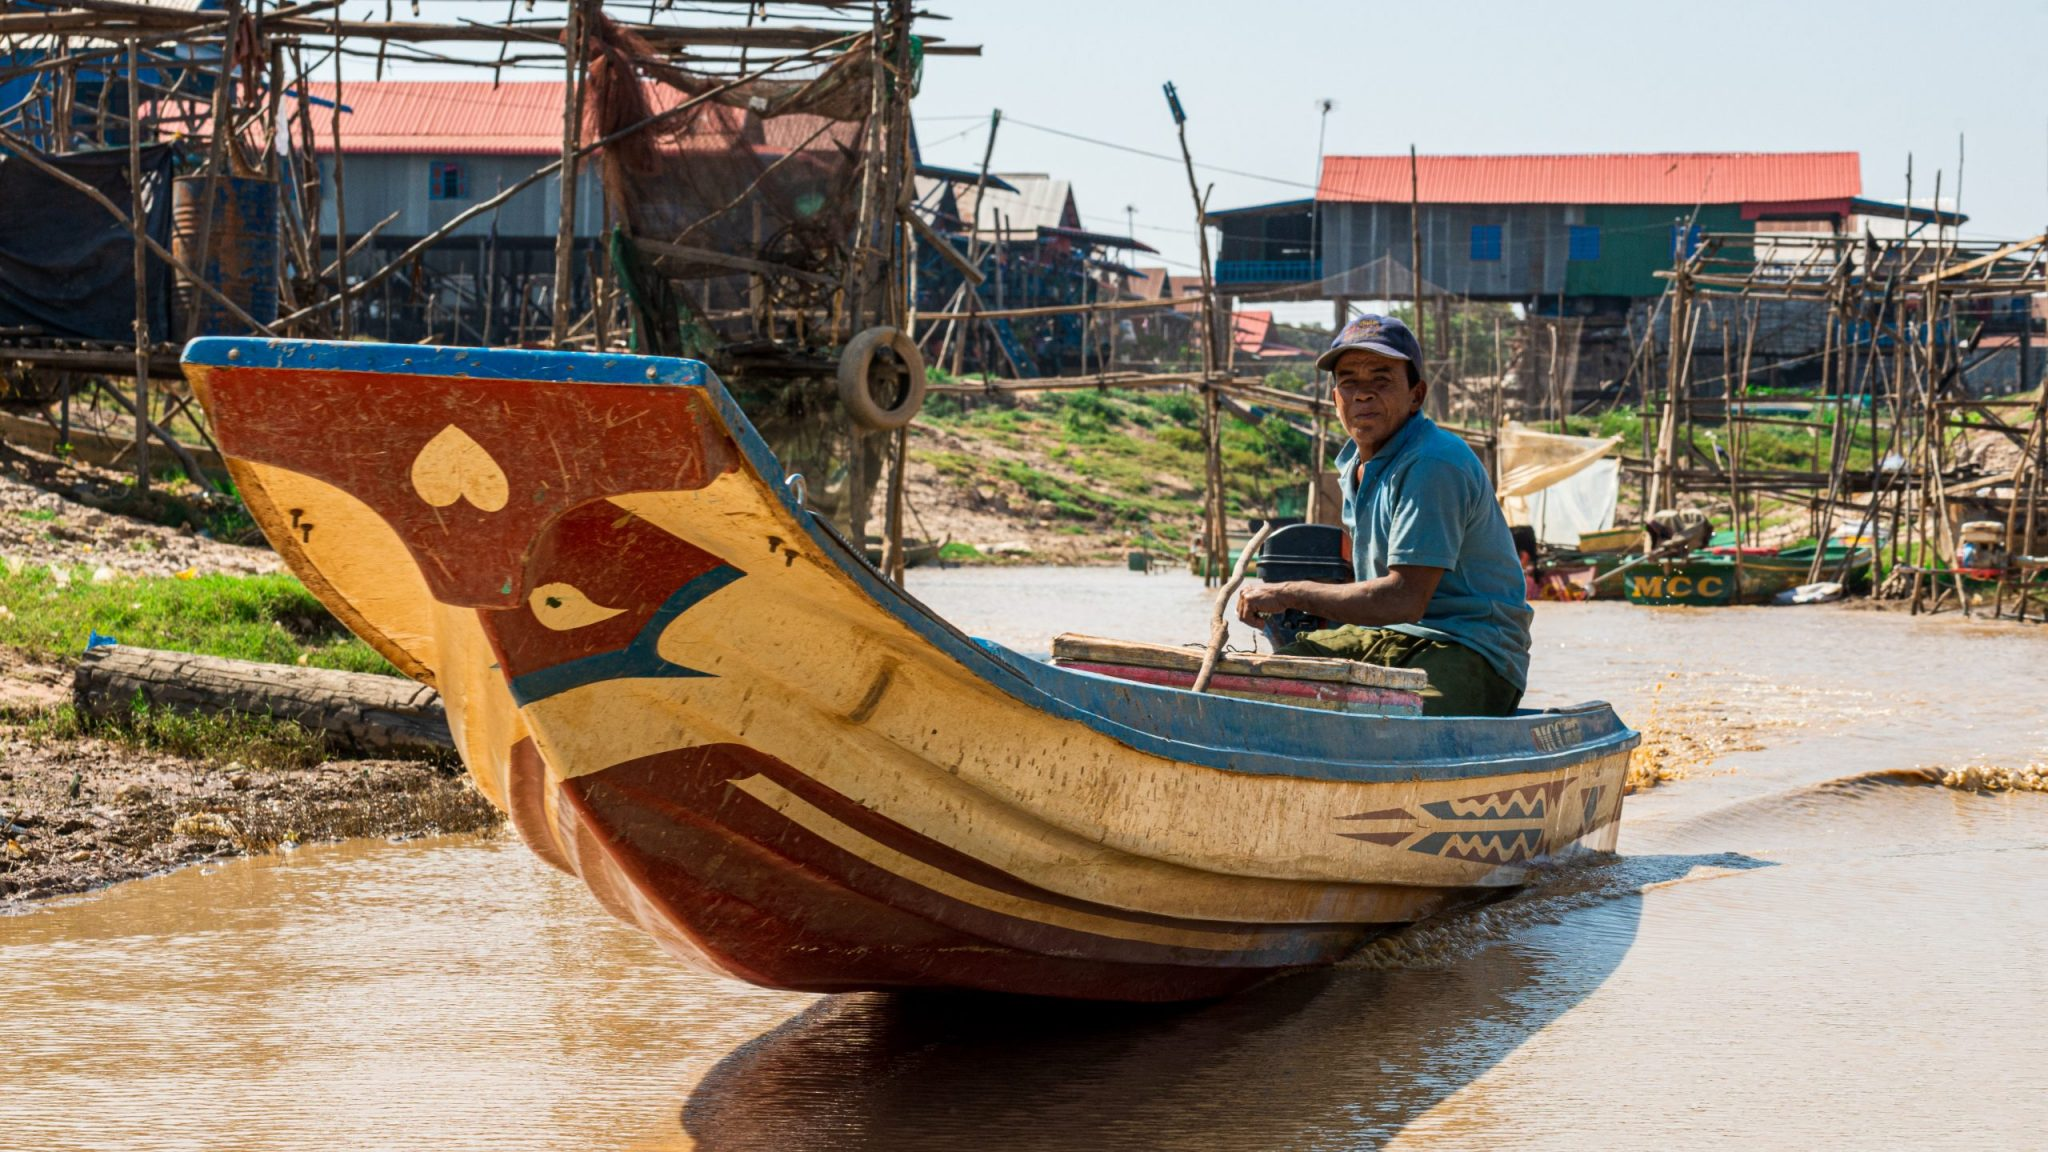 A photo of a villager rowing a canoe in Kompong Phluk, Cambodia.